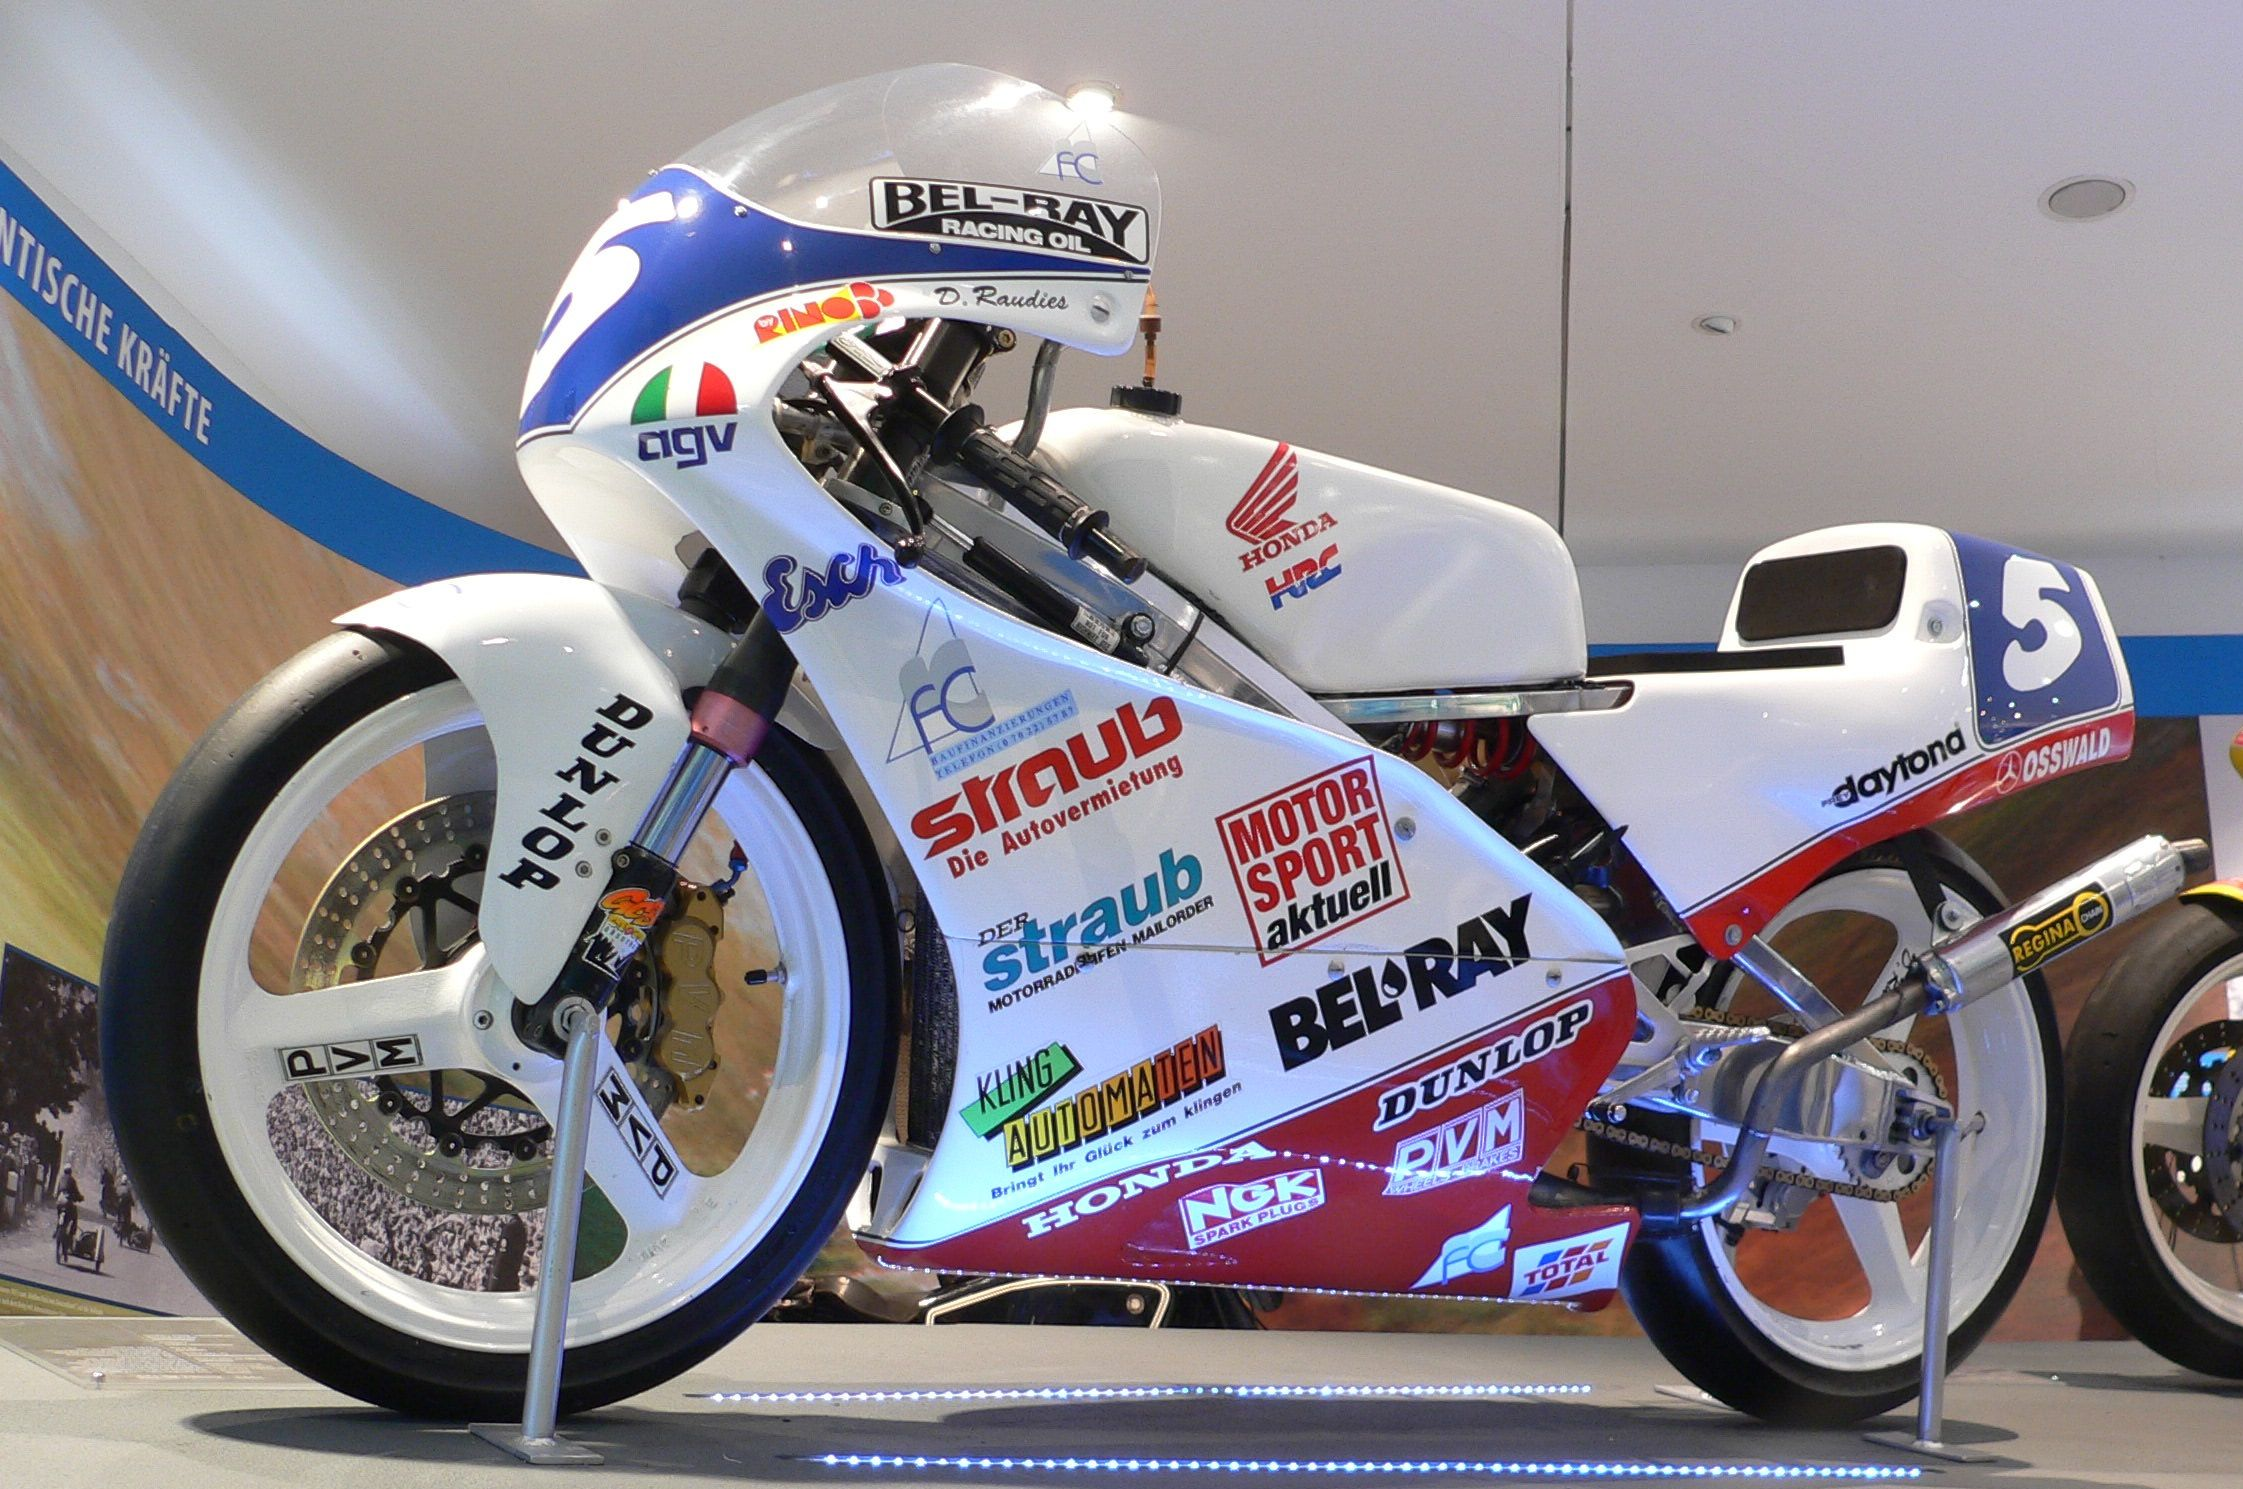 Would love to have this early 1991 RS125cc Honda race bike in the collection. One day...